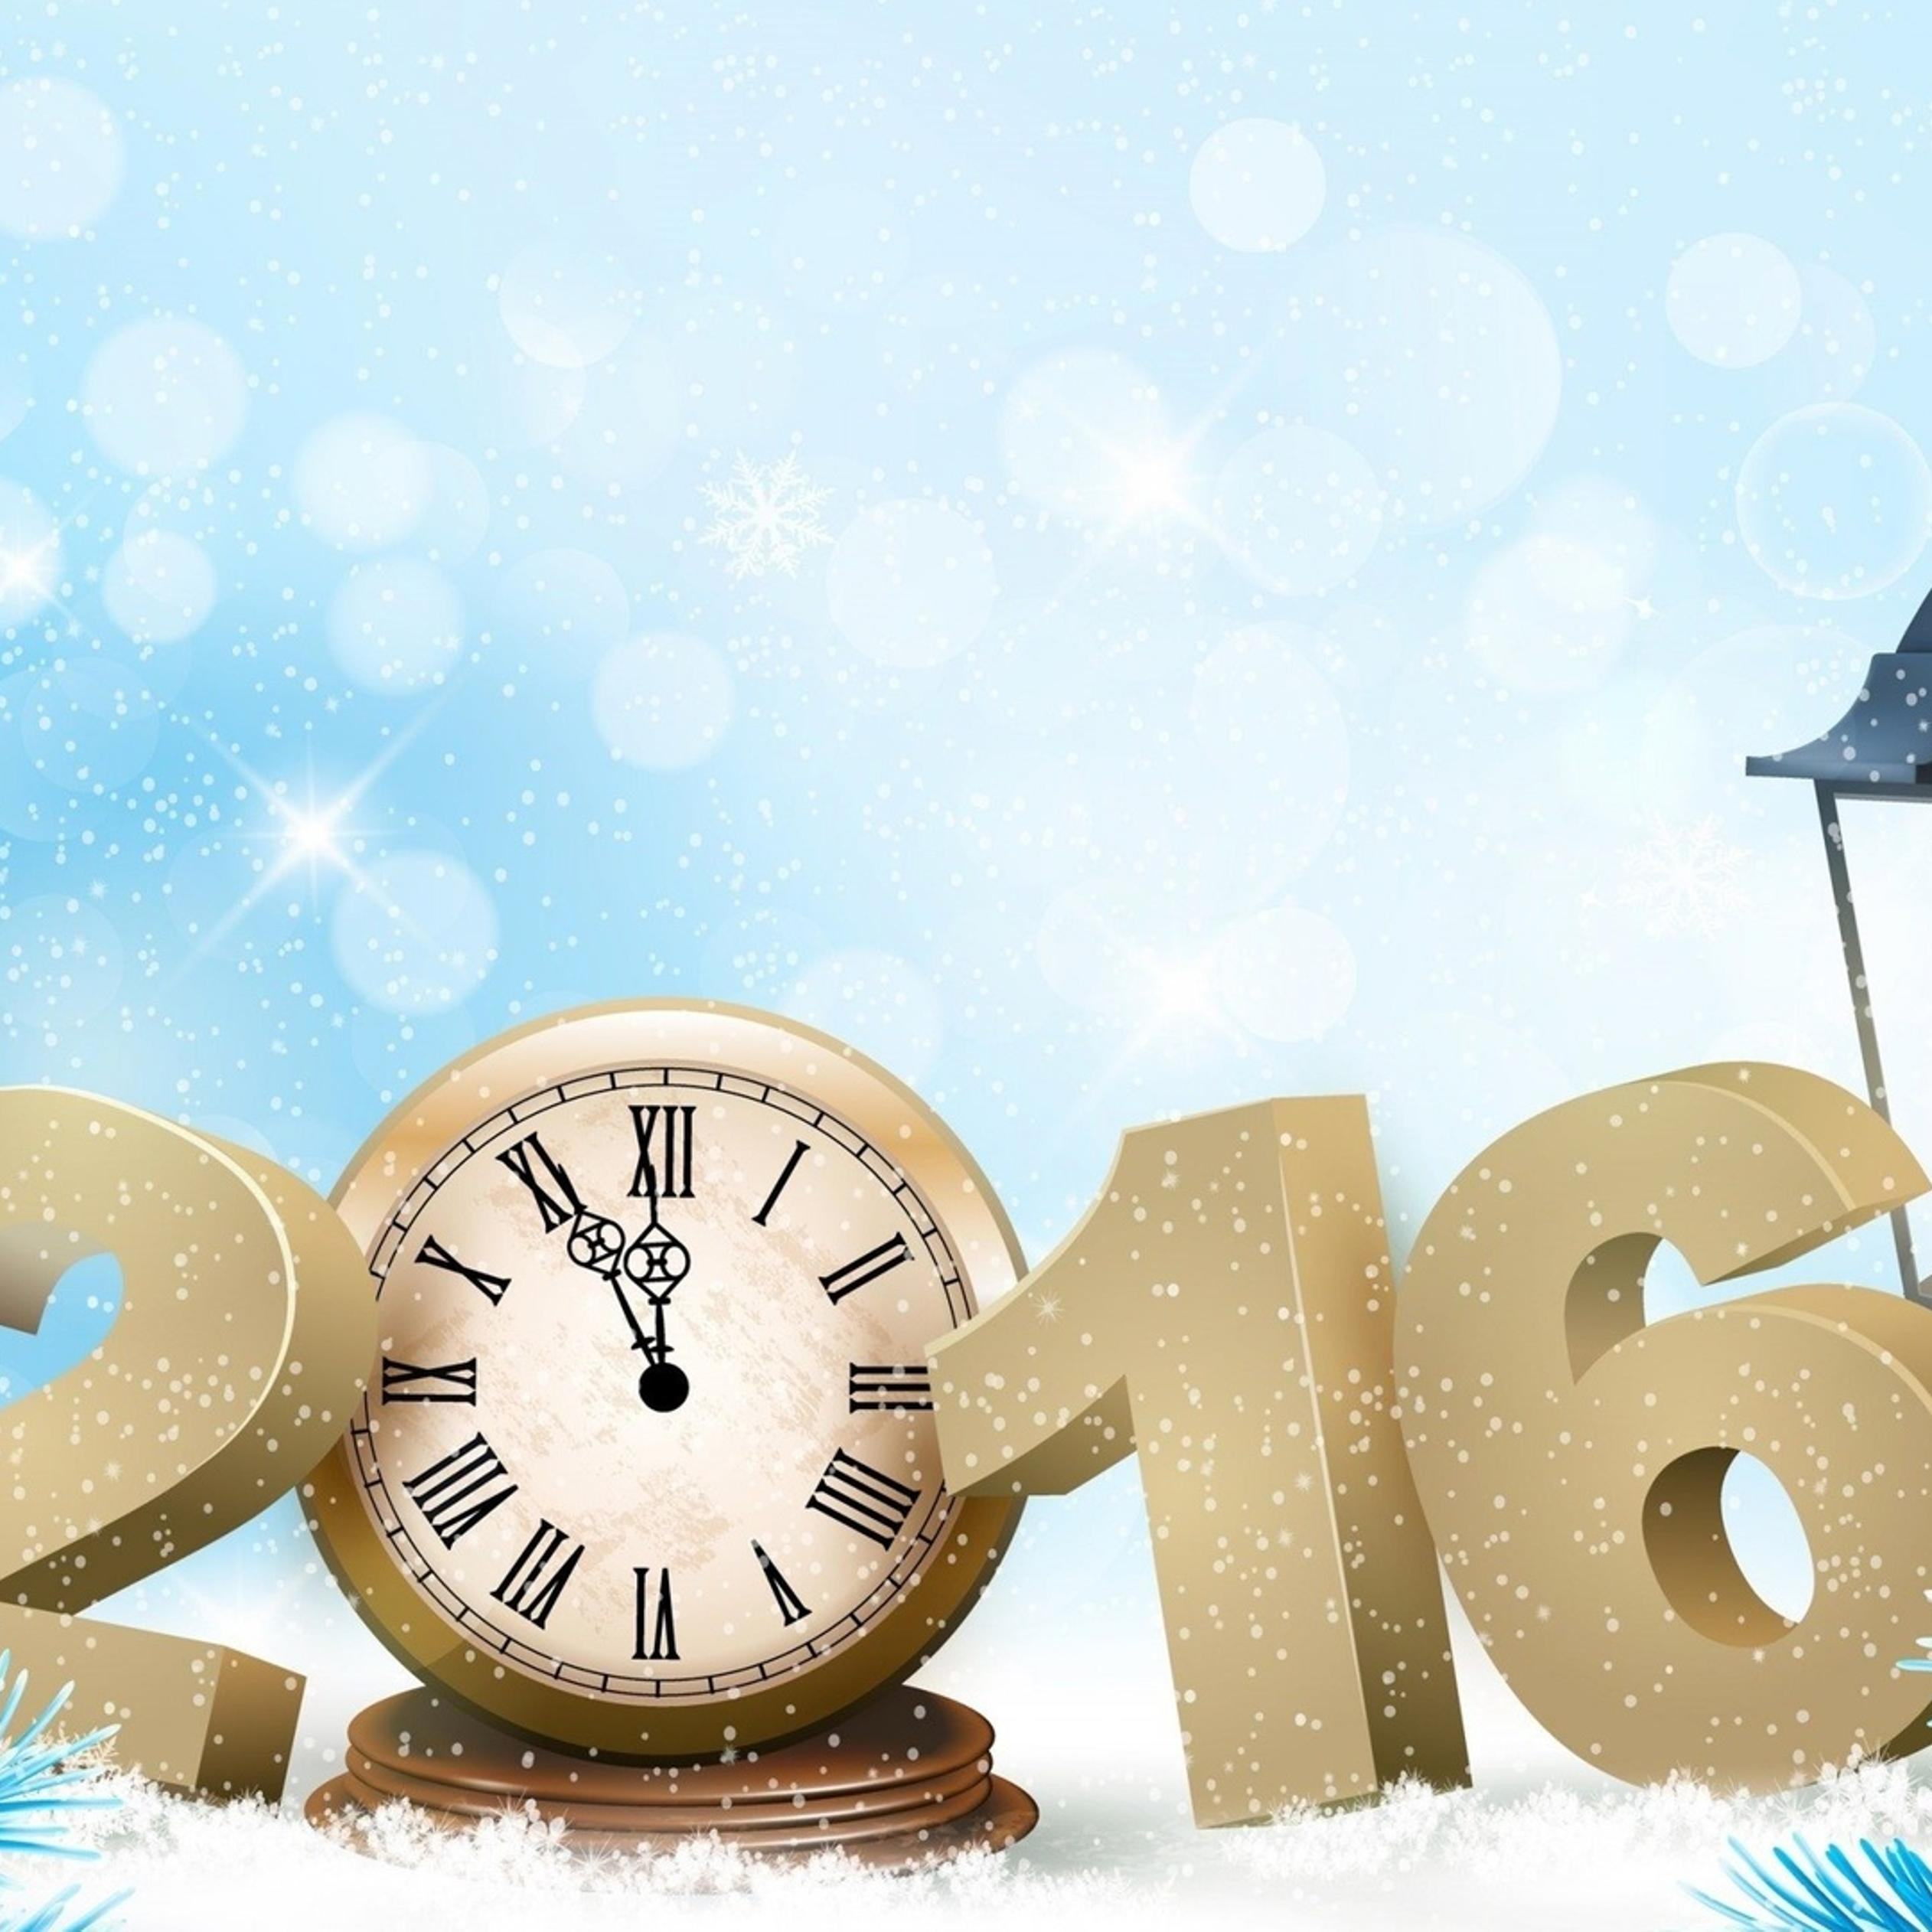 2016 in the snow happy new year wallpaper download 2524x2524